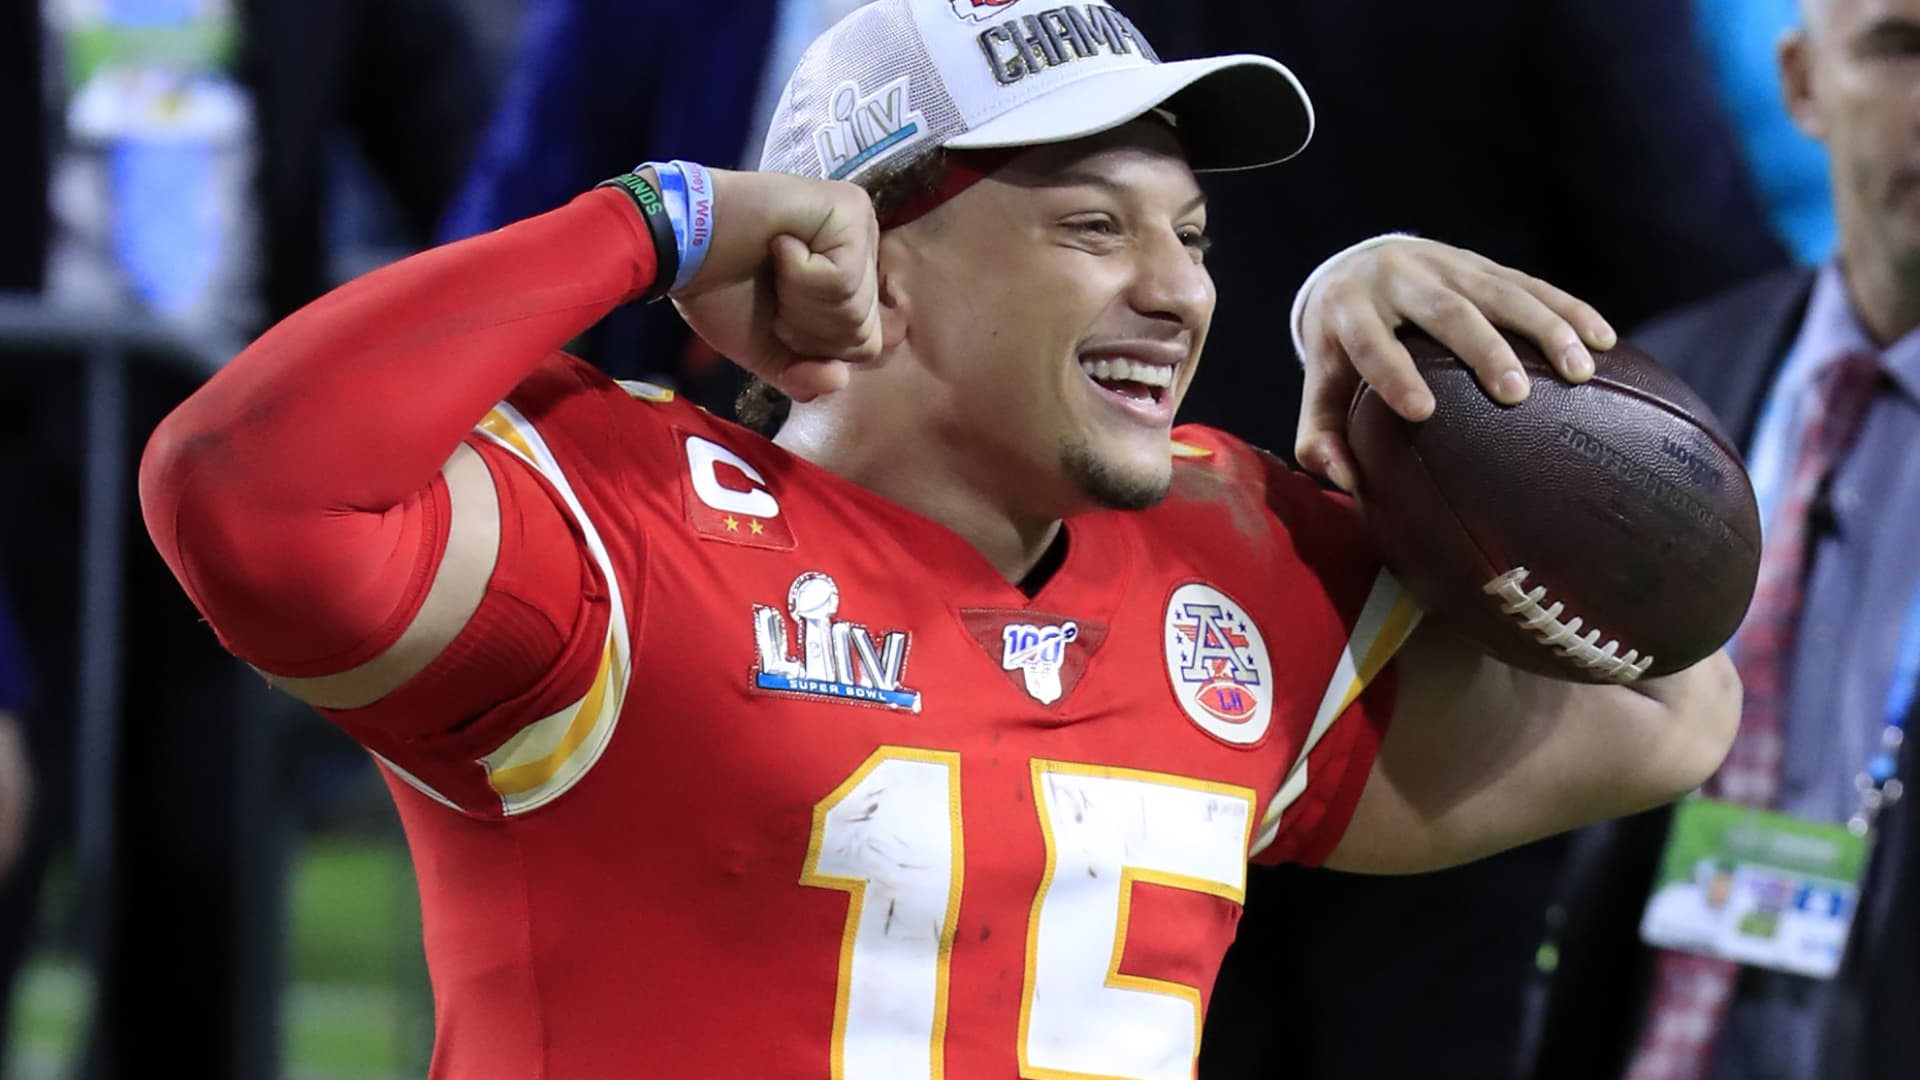 Patrick Mahomes #15 of the Kansas City Chiefs celebrates after defeating the San Francisco 49ers 31-20 in Super Bowl LIV at Hard Rock Stadium on February 02, 2020 in Miami, Florida.